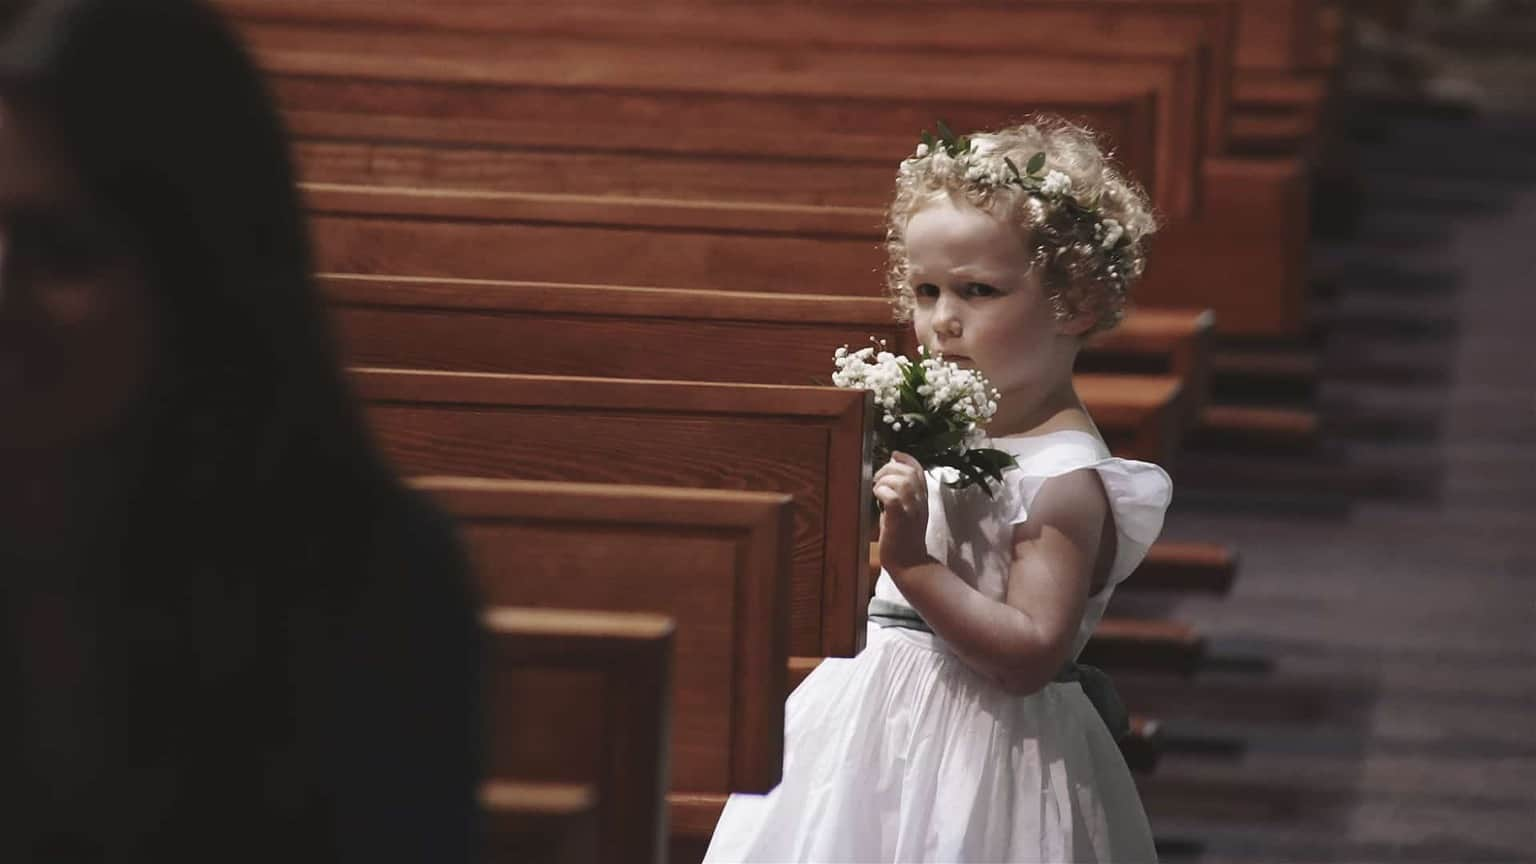 Flower girl looking ab sad and holding flowers